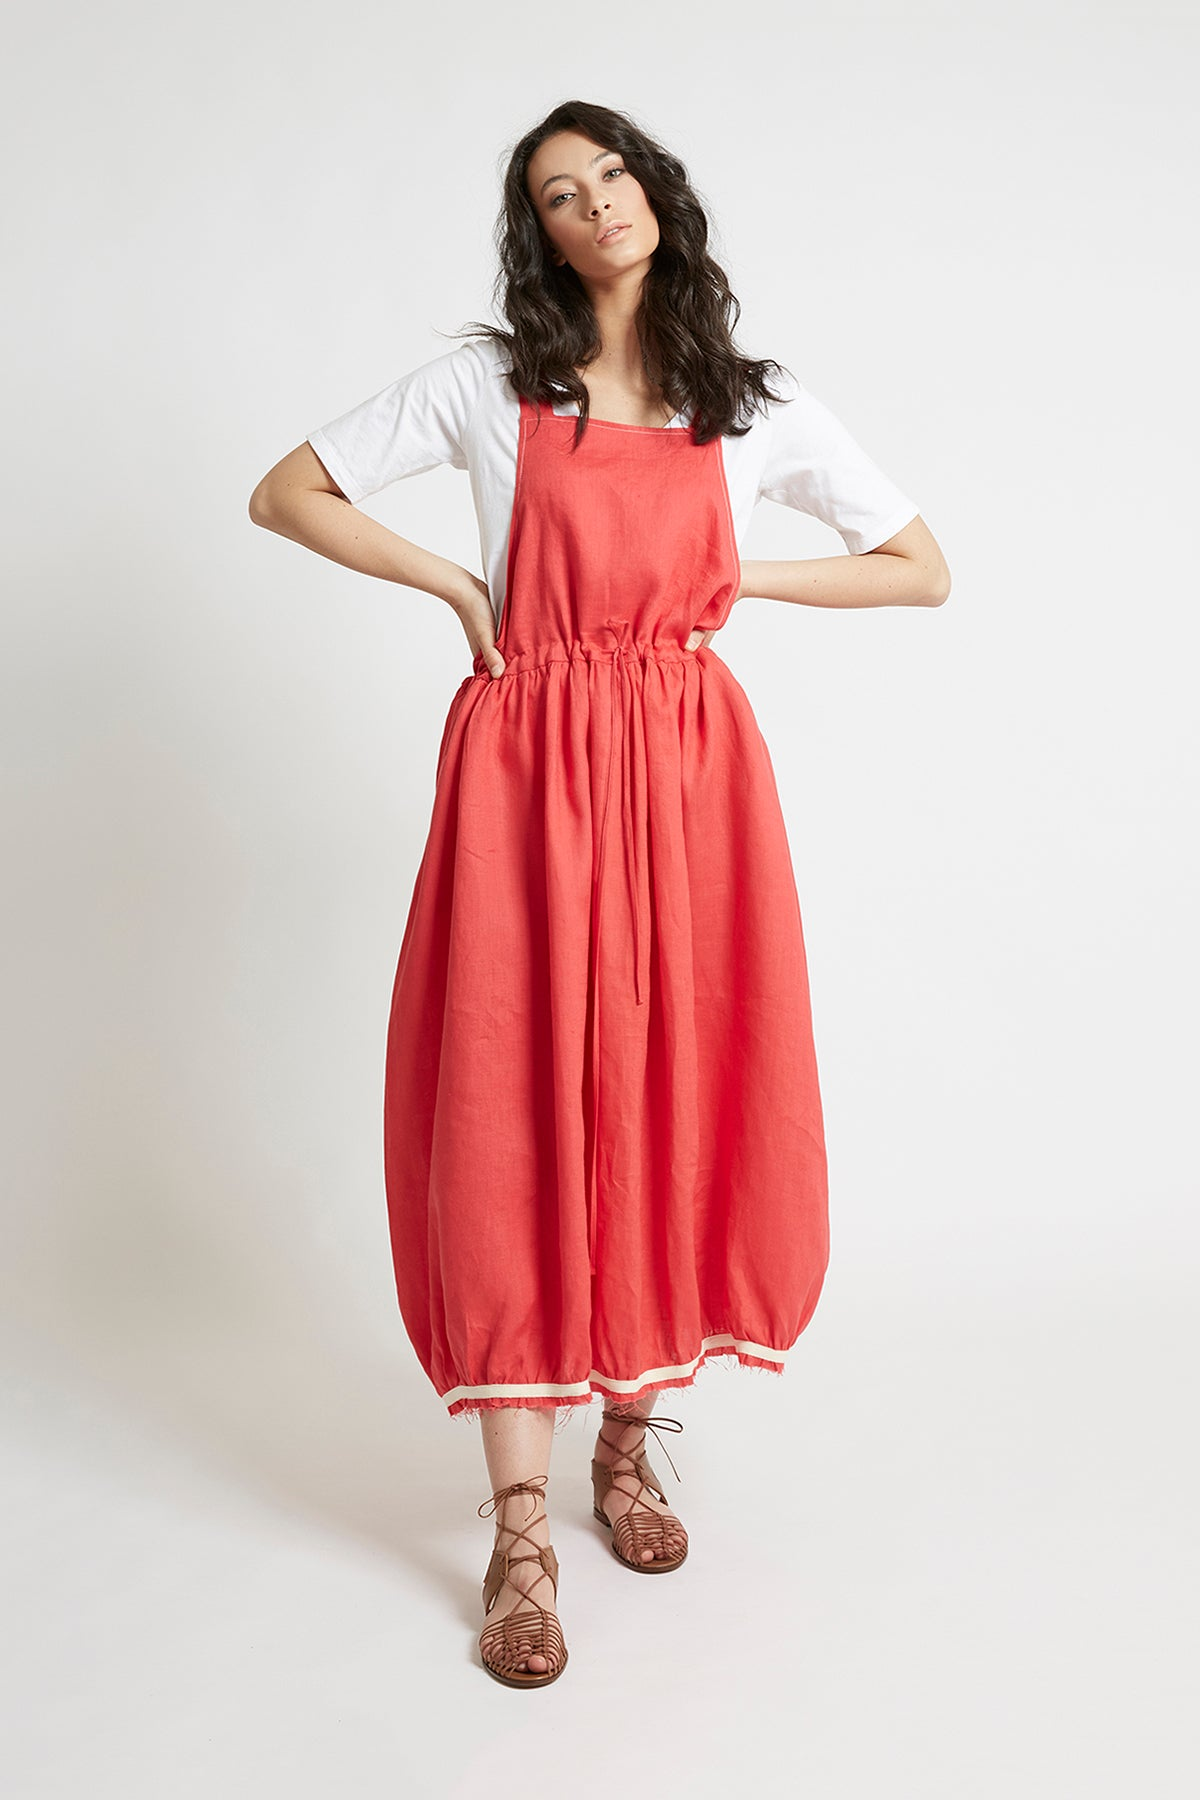 Red Linen Drawstring Pinafore Dresses Ethical Sustainable Vegan Organic Australian fashion womens clothes